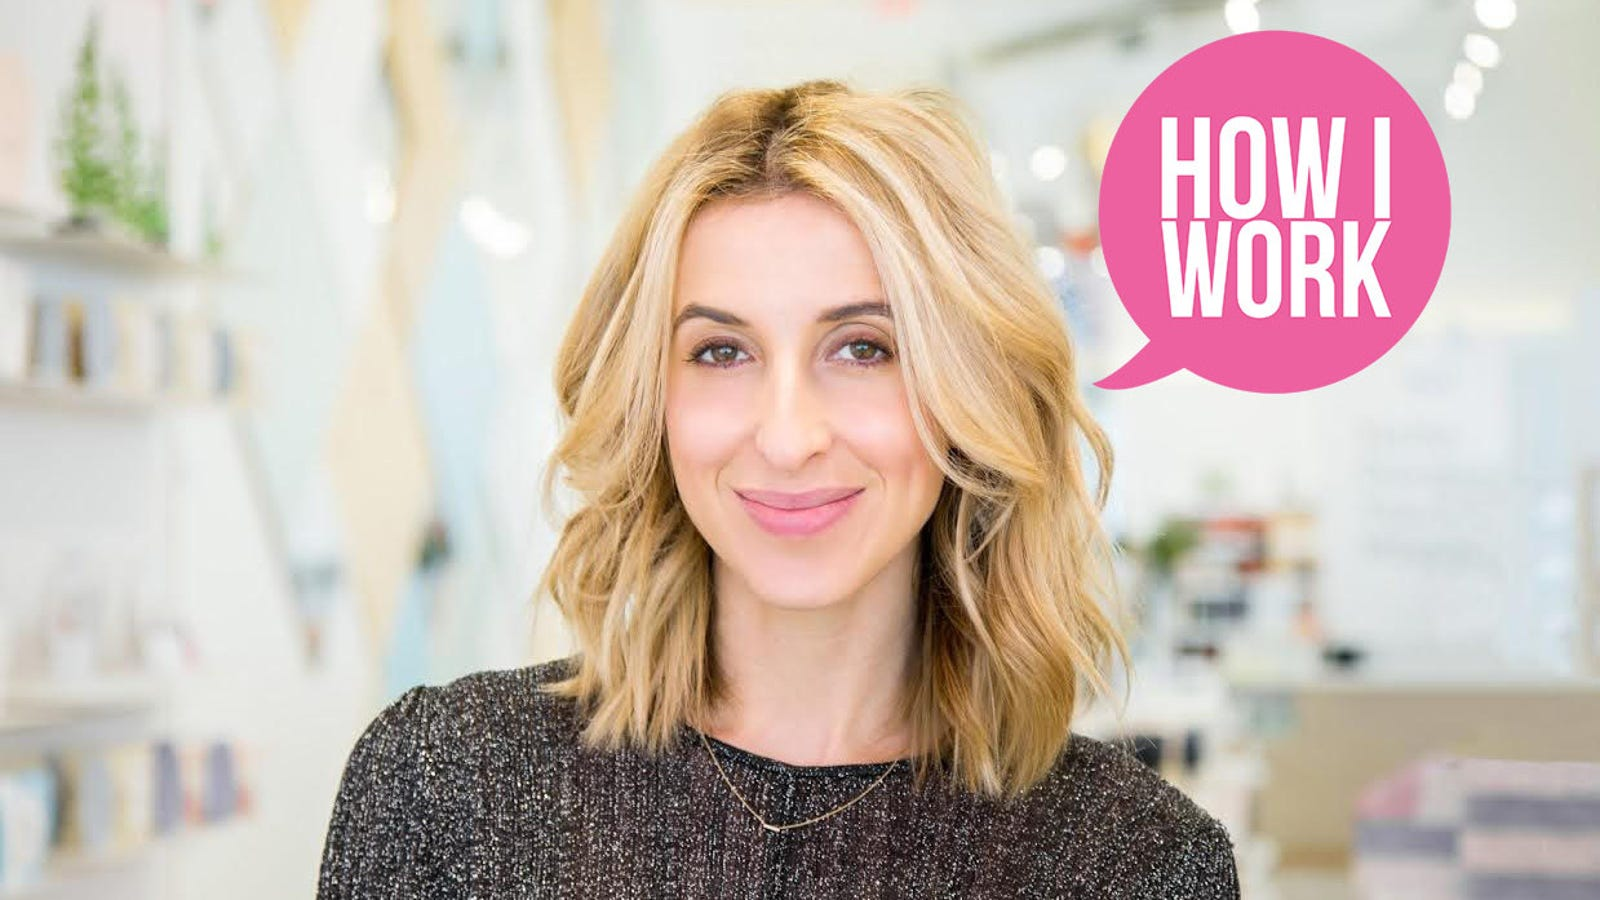 Heres What the Co-Founder of Birchbox Always Takes on Holiday With Her